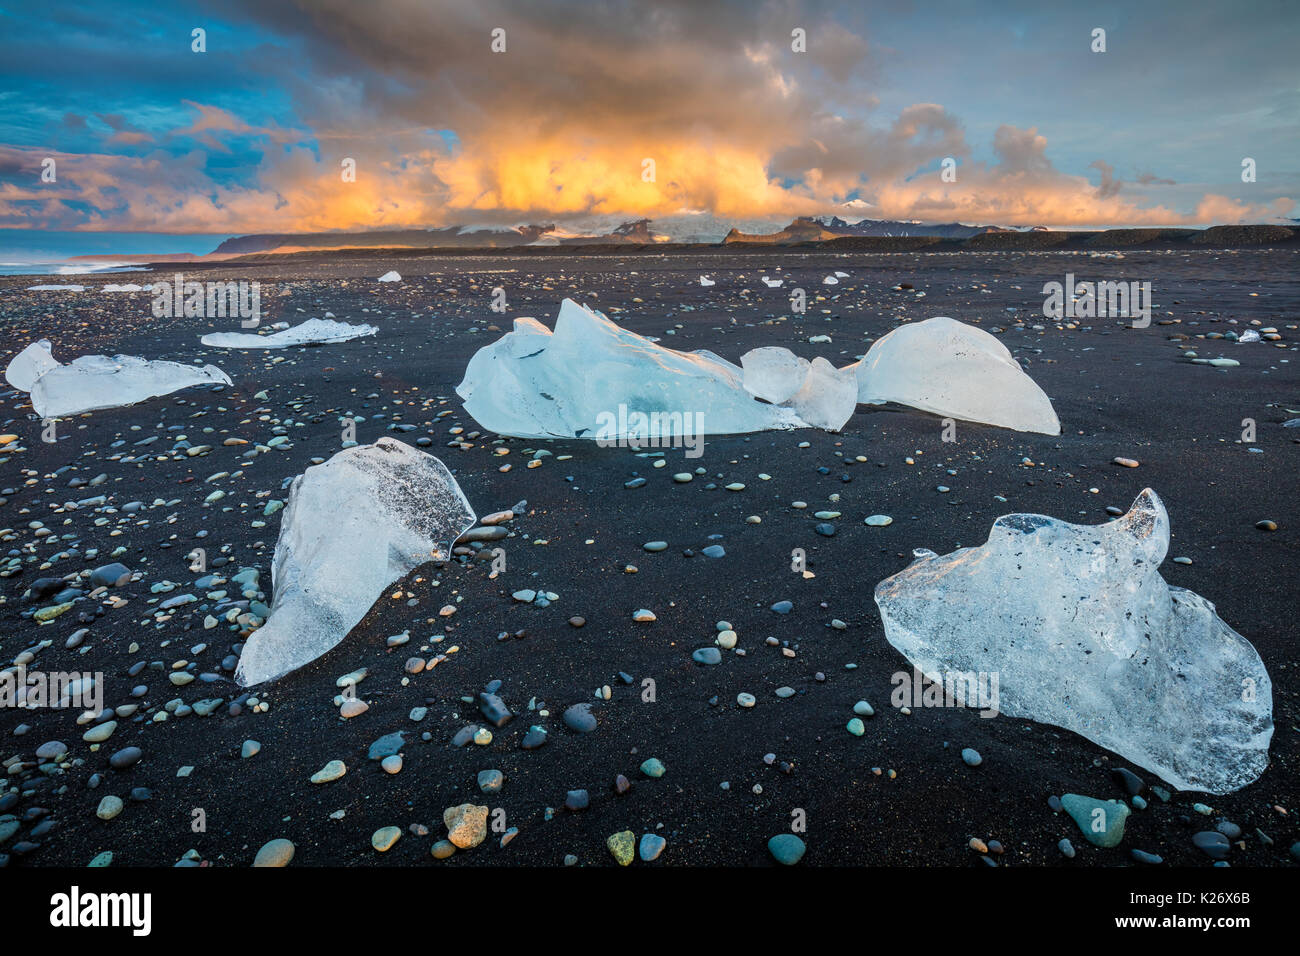 Jökulsárlón is a large glacial lake in southeast Iceland, on the edge of Vatnajökull National - Stock Image